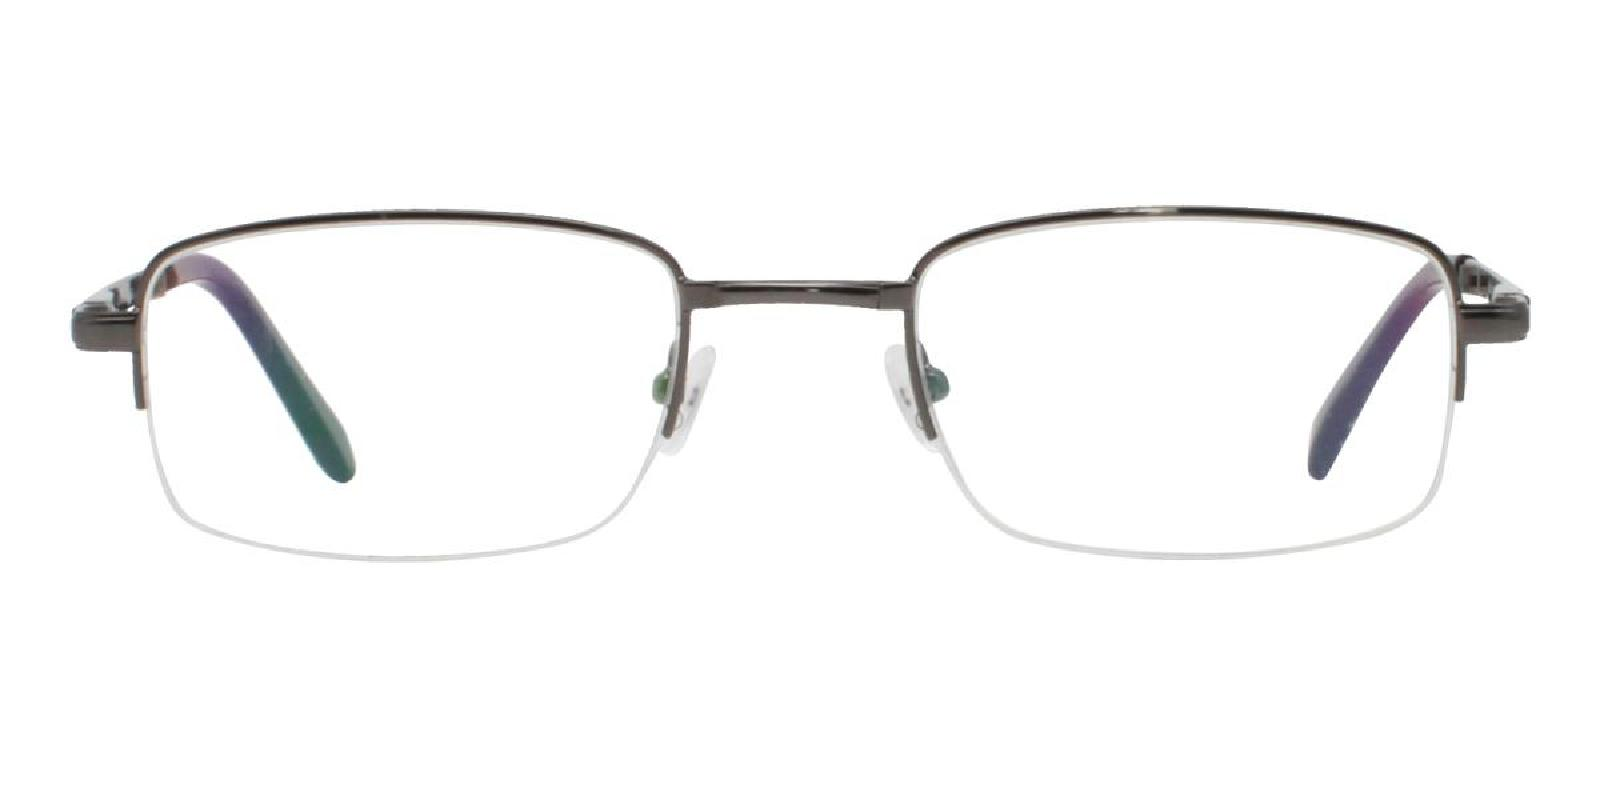 Andrew-Gun-Rectangle-Metal-Eyeglasses-additional2